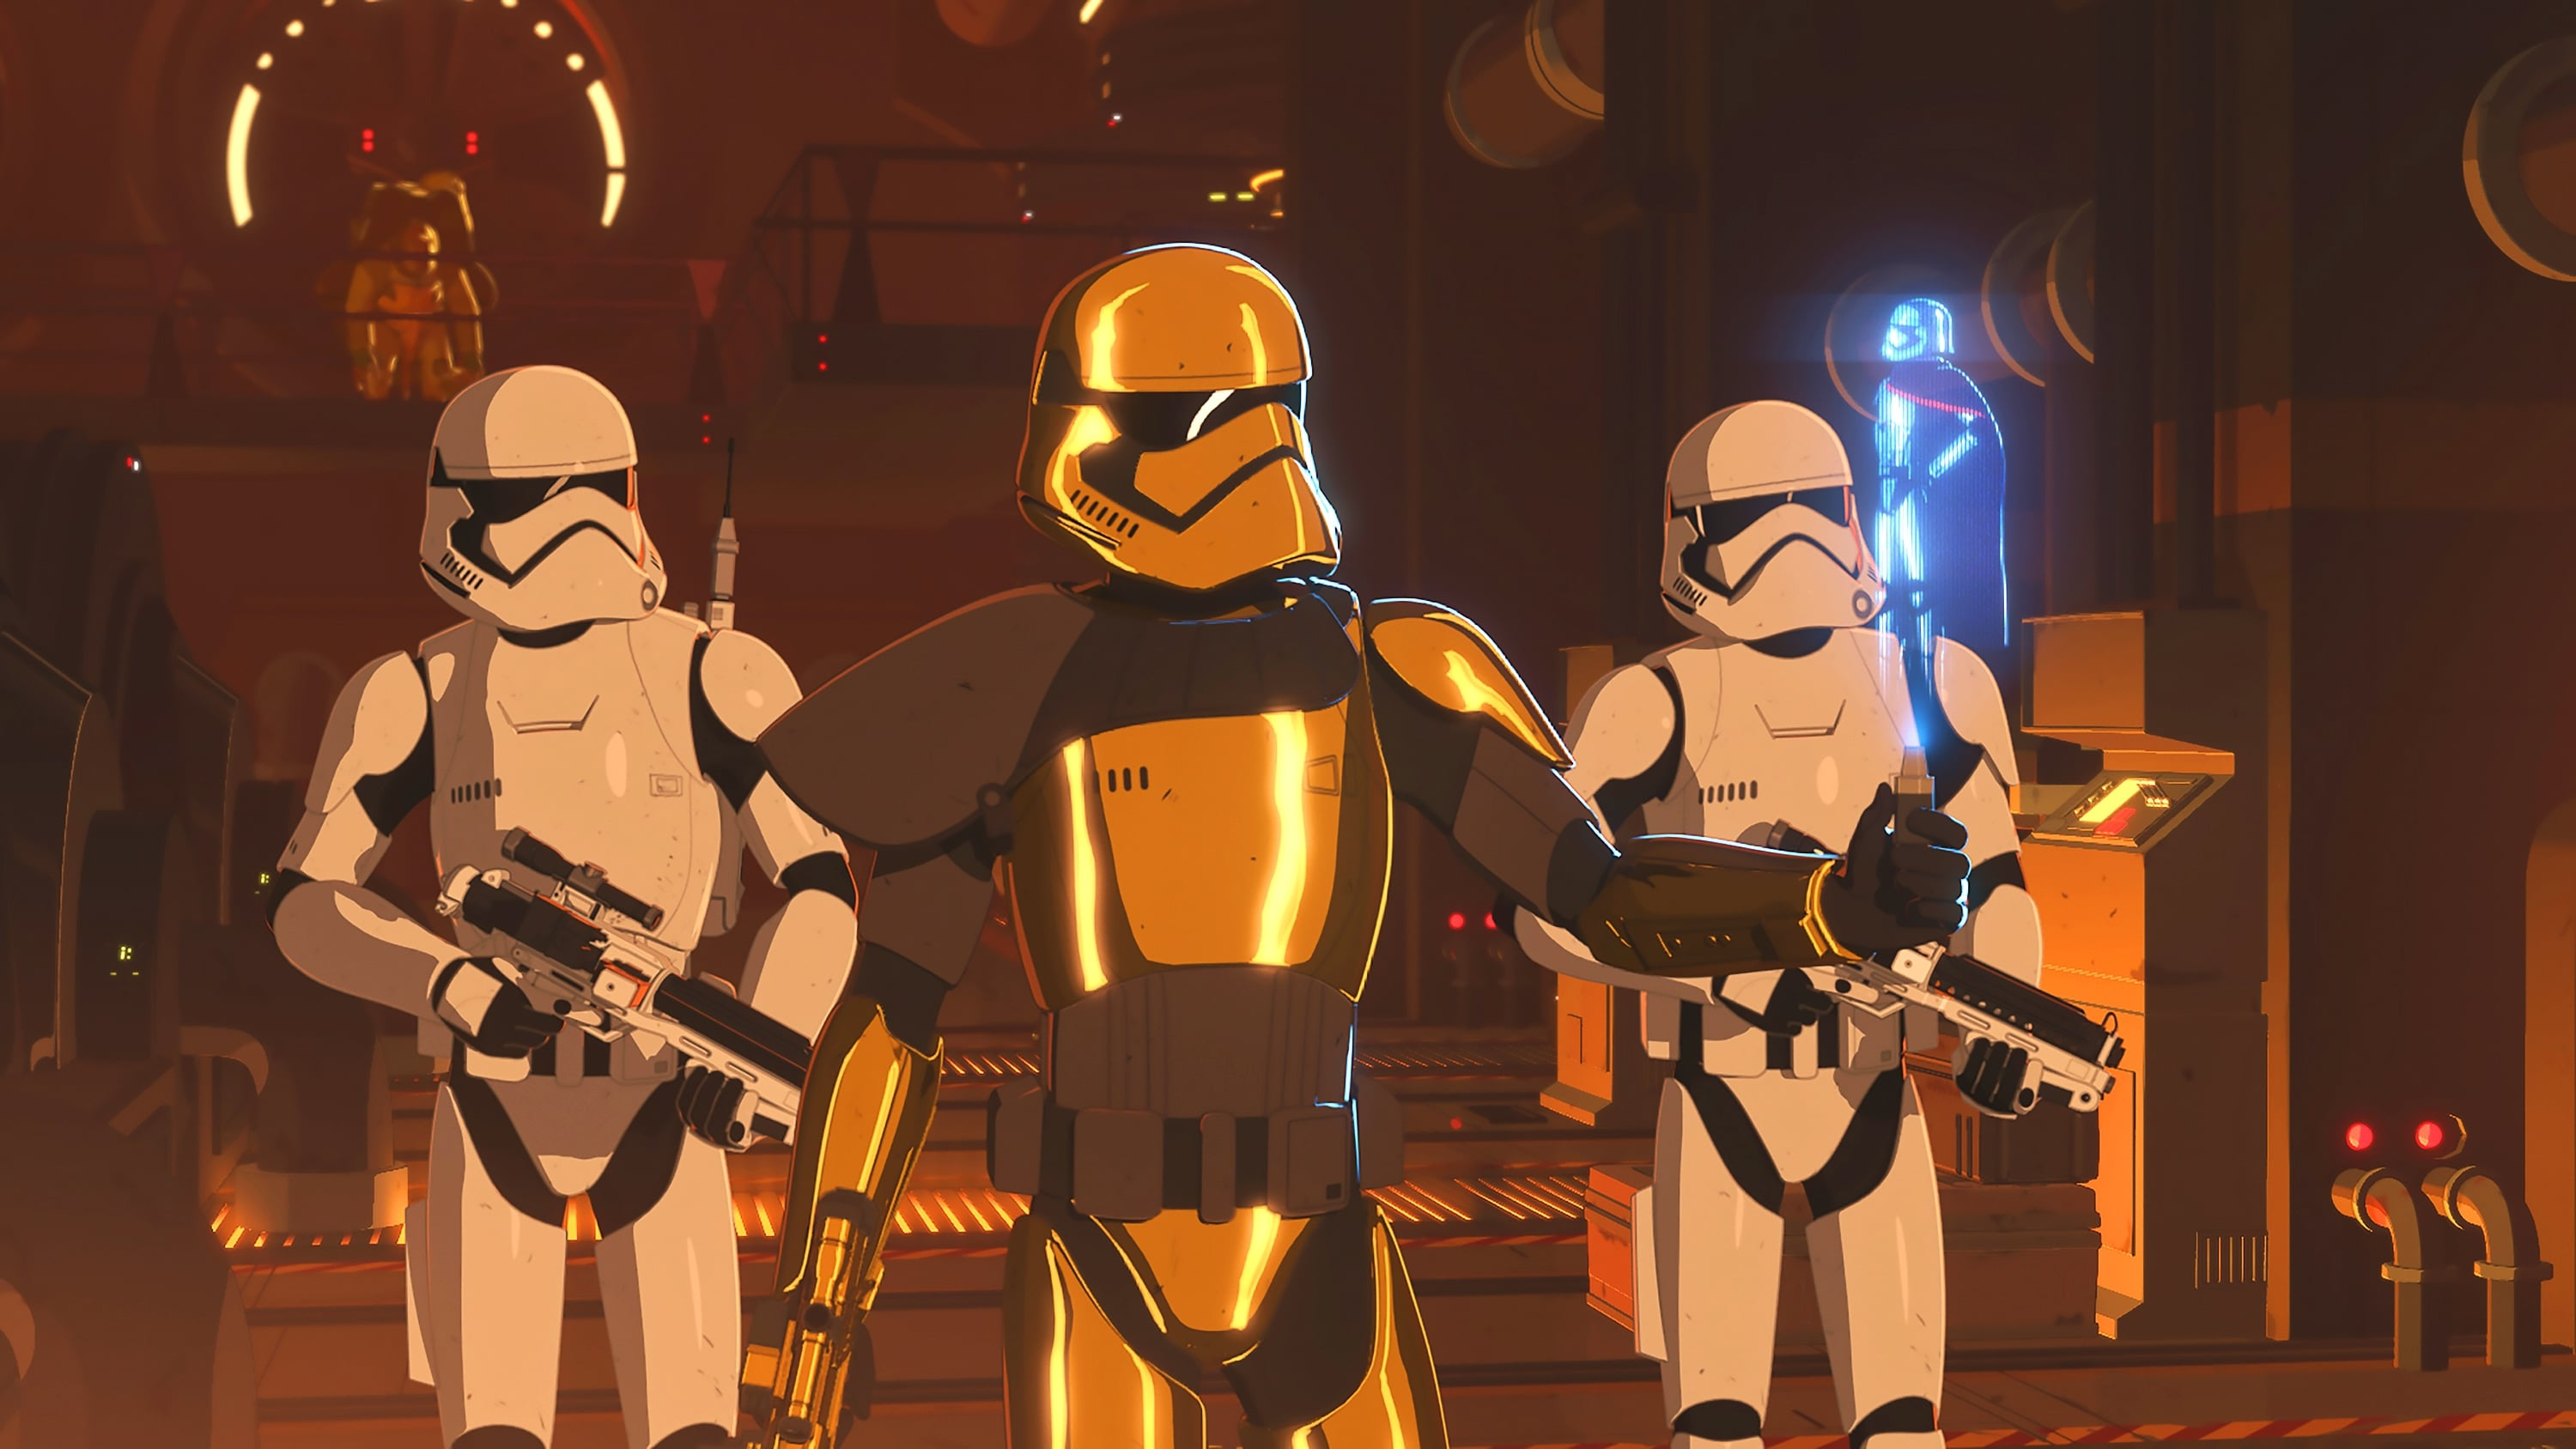 Star Wars Resistance Season 1 Episode 5 - Putlocker